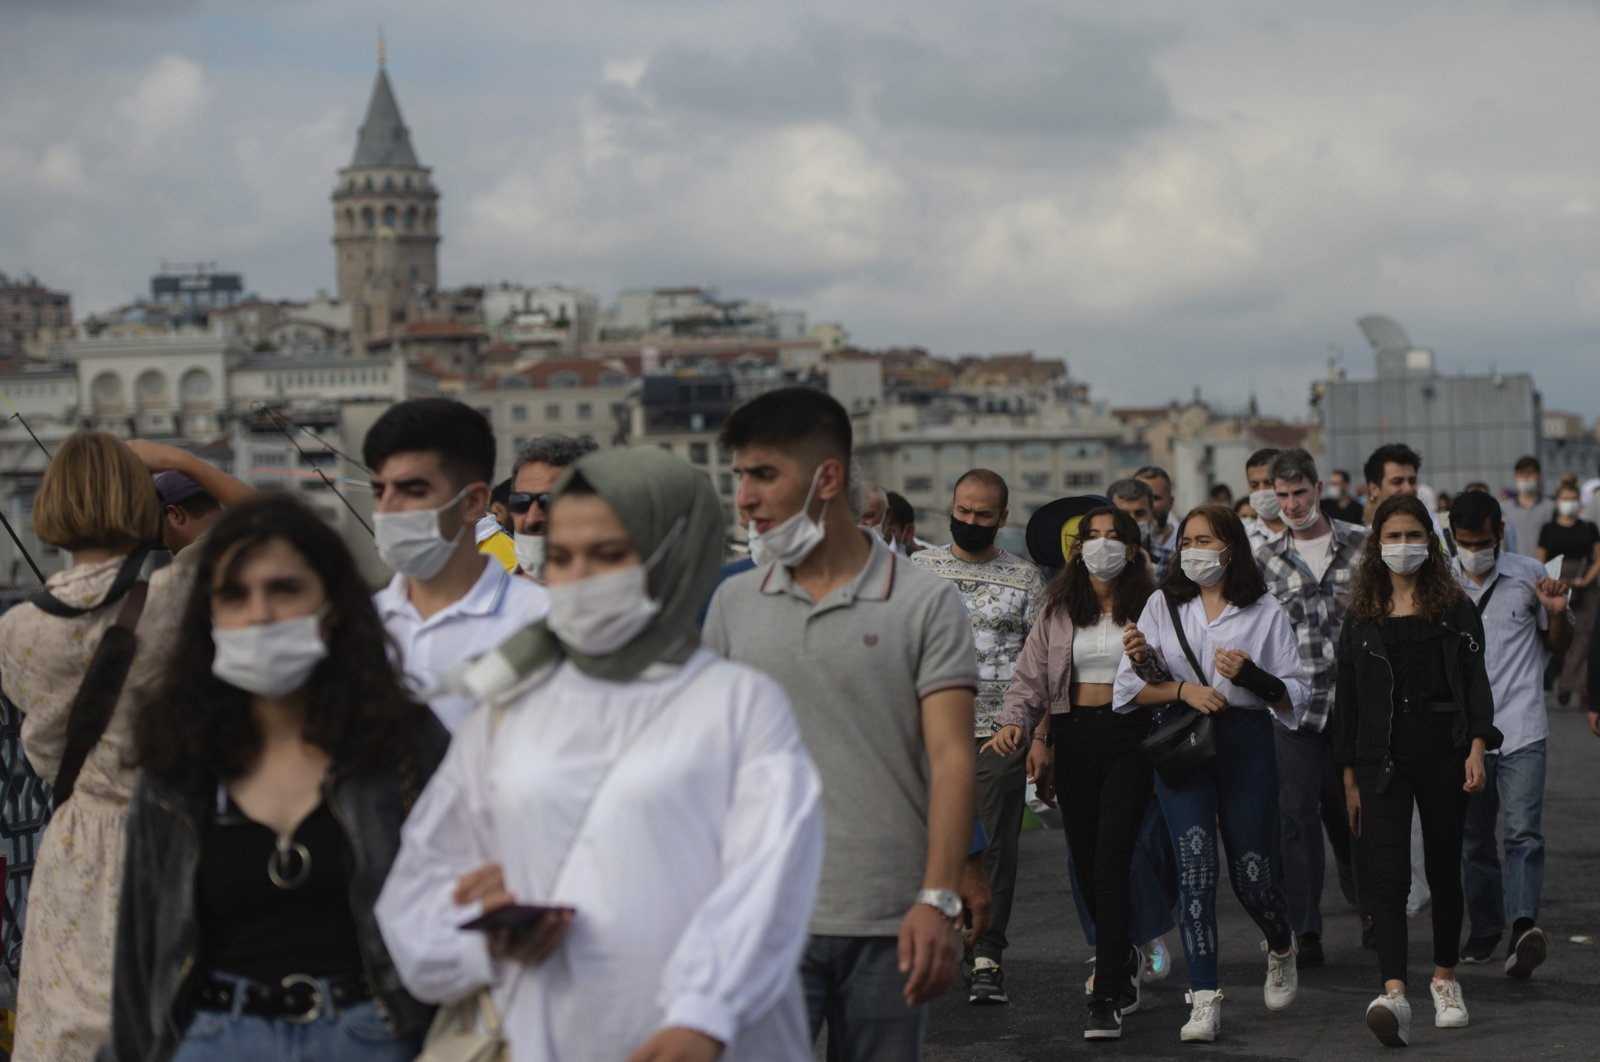 Backdropped by Istanbul's iconic Galata Tower, people wearing masks for protection against the spread of coronavirus, walk over Eminönü bridge in Istanbul, Sept. 11, 2020. (AP Photo)